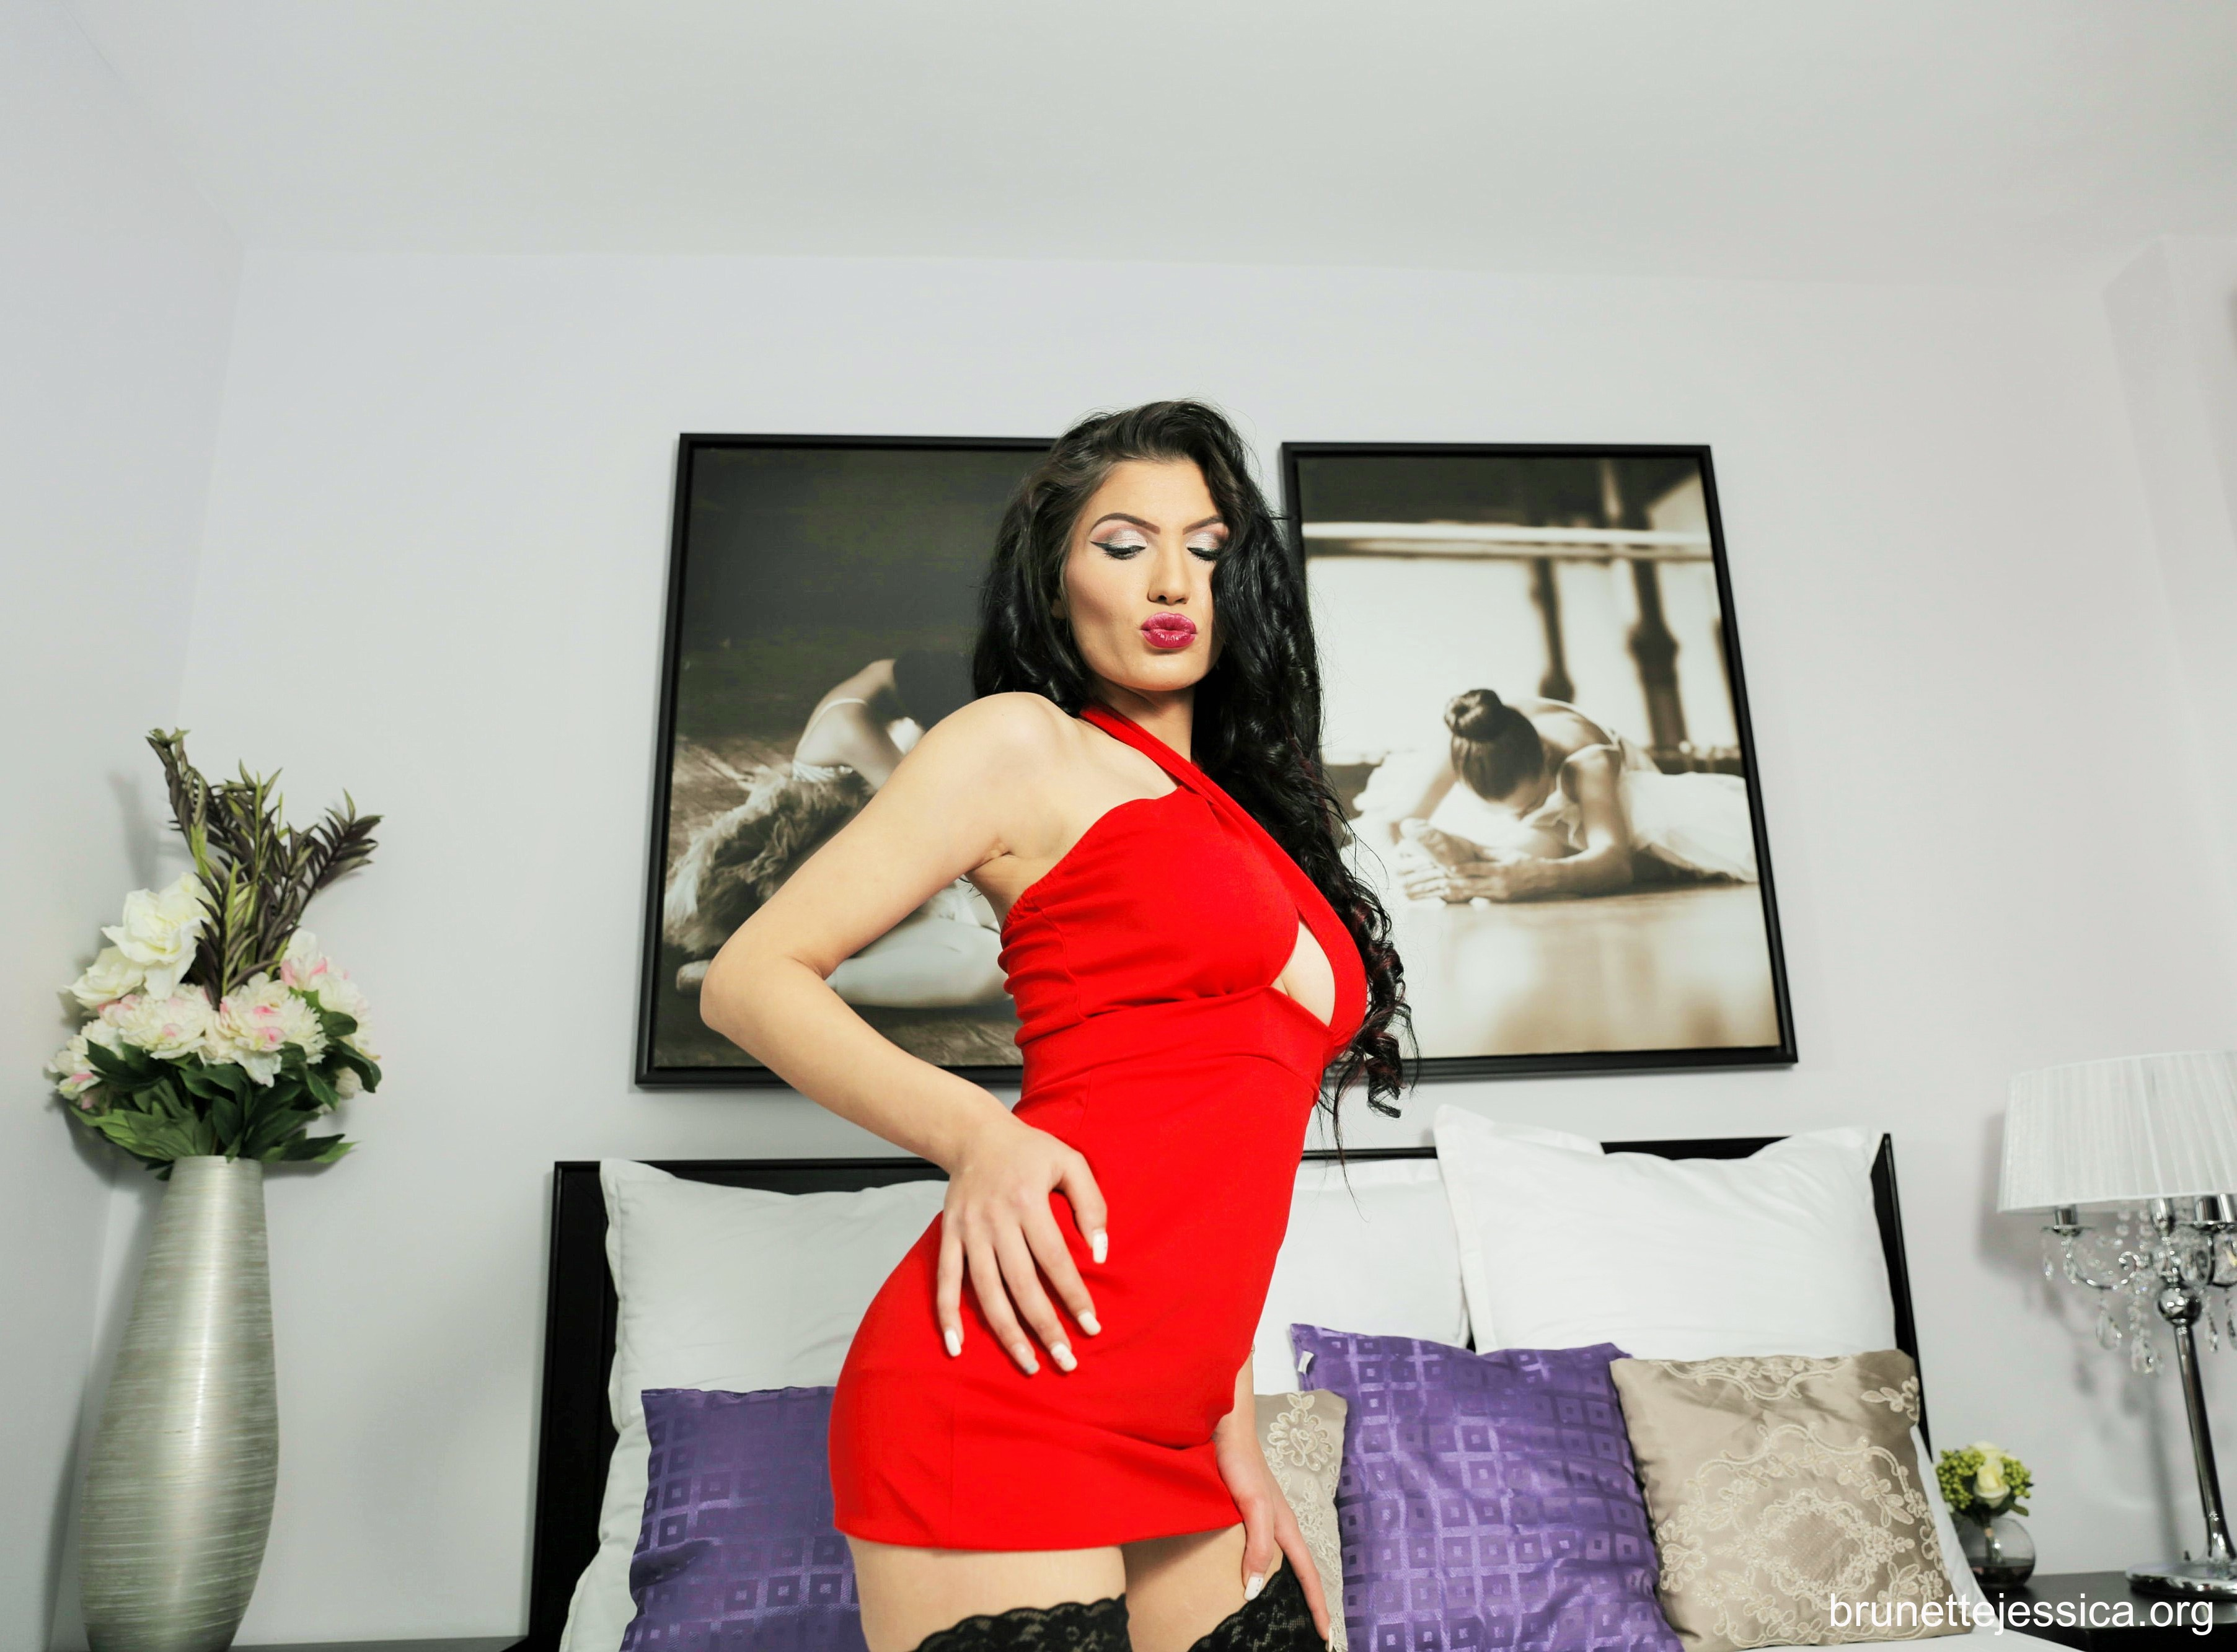 Brunette Jessica Big Boobs Tight Red Dress and Stockings